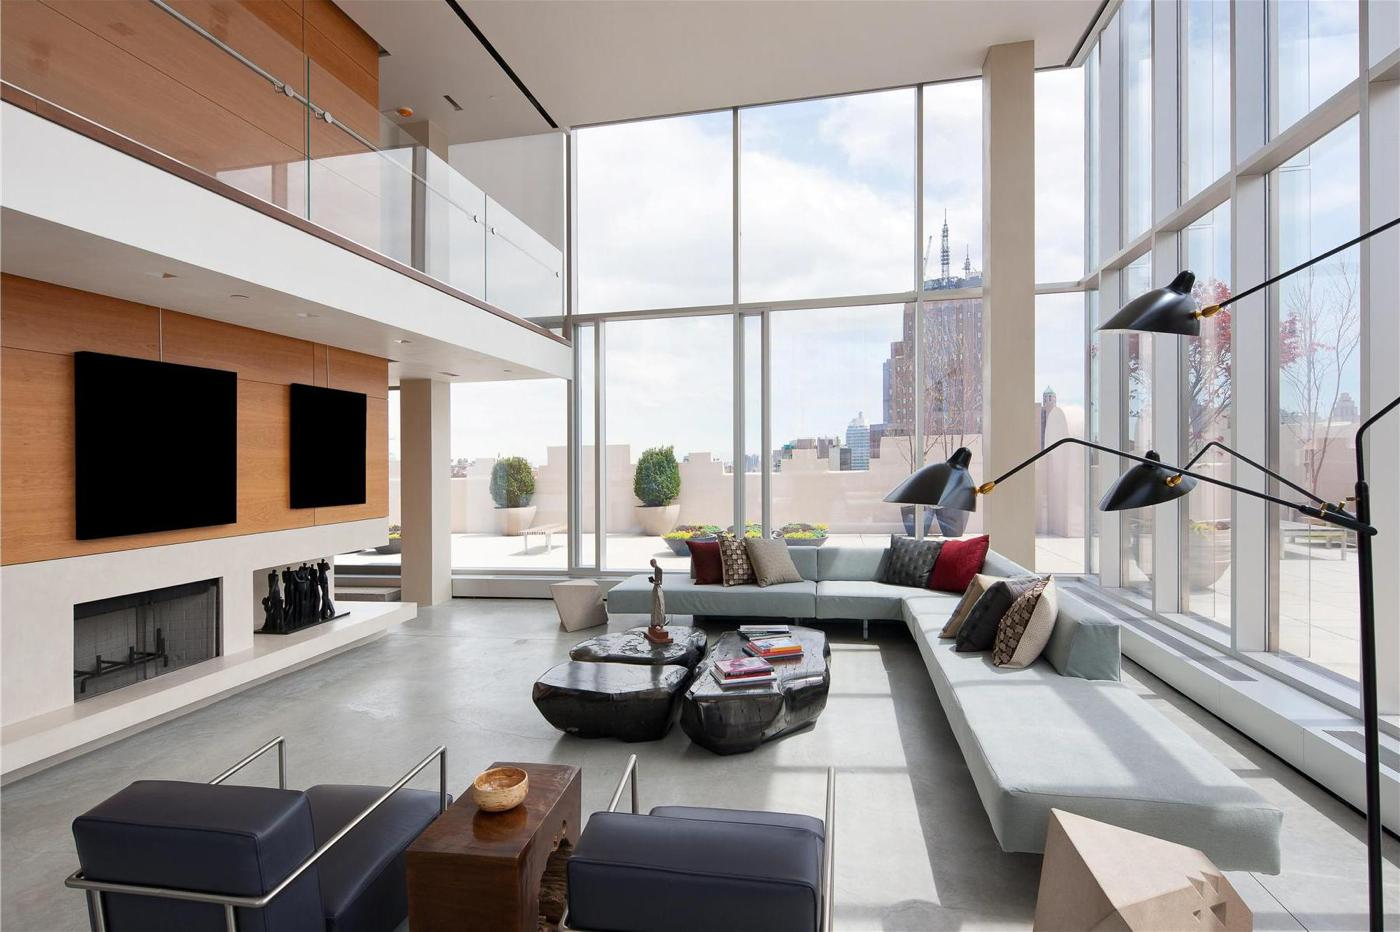 12 Amazing New York Loft Apartments That Will Give You A Serious Case Of Home Envy! (10)